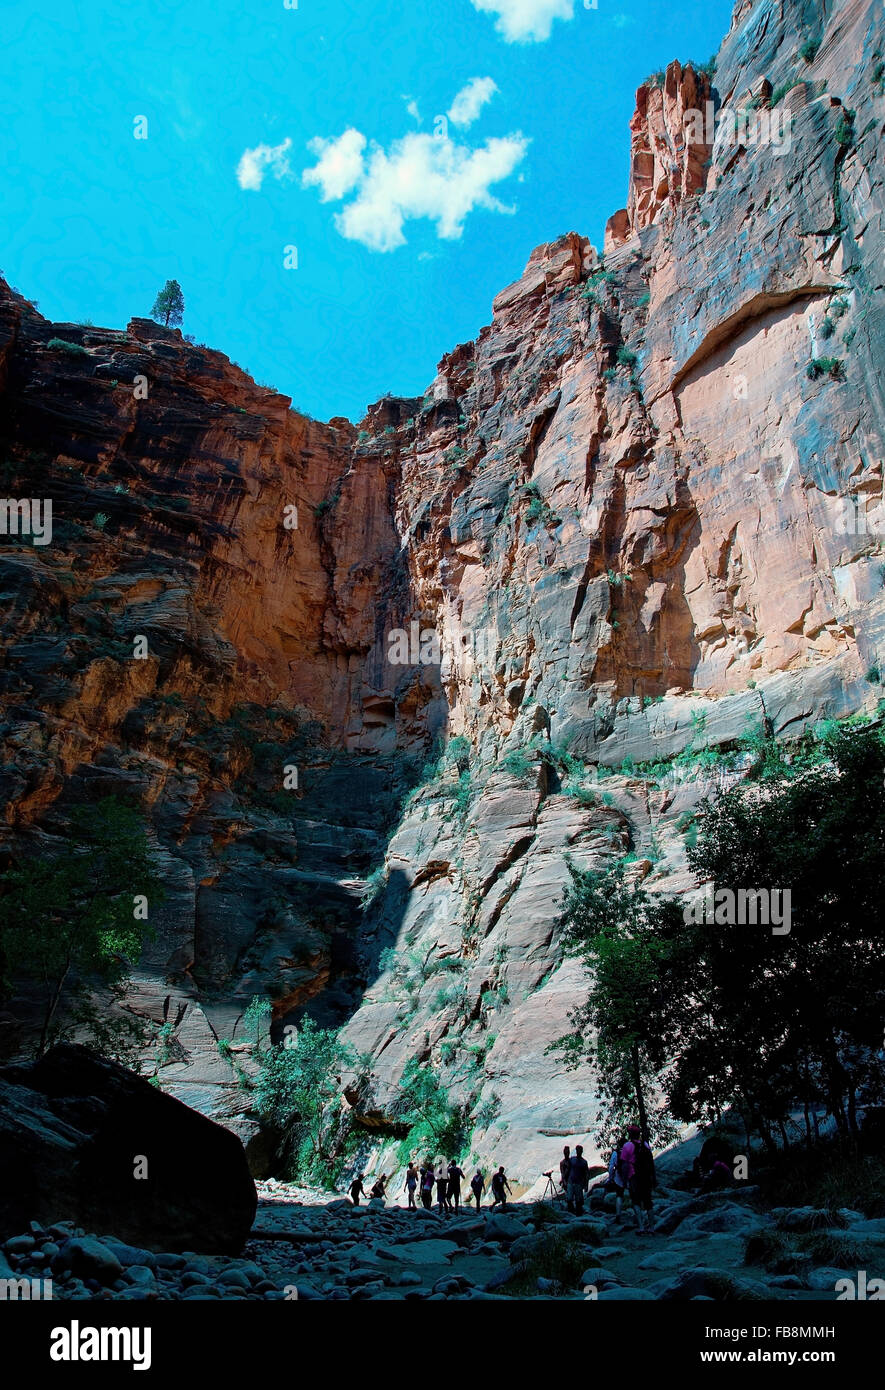 Big Rocks and Blue sky In Zion national park - Stock Image